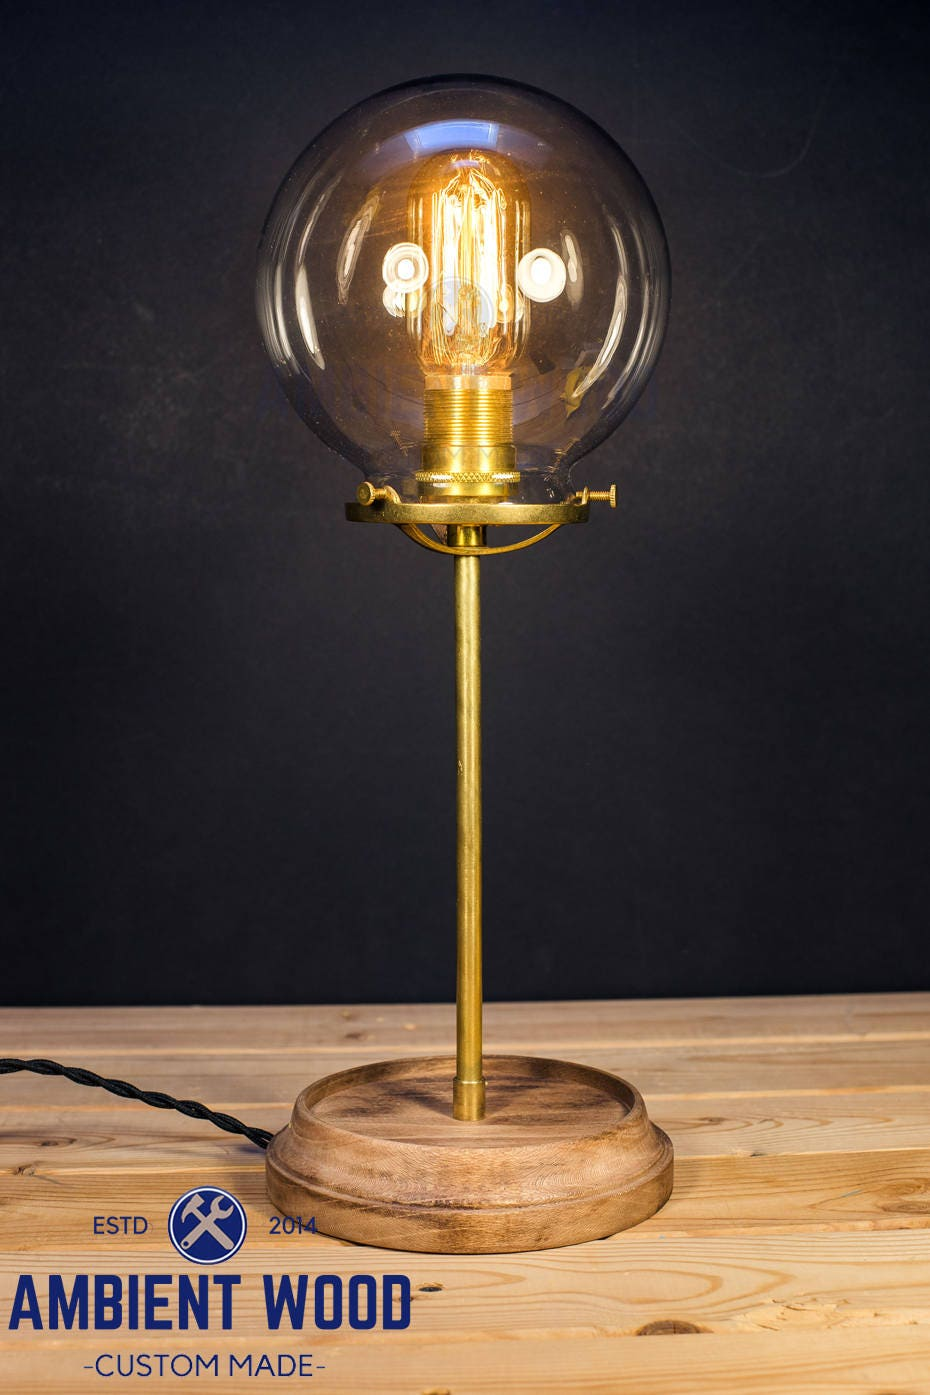 Table lamp glass shade wood base solid brass bulb light desk lamp table lamp glass shade wood base solid brass bulb light desk lamp edison brass light brass lamp glass fixture mozeypictures Image collections